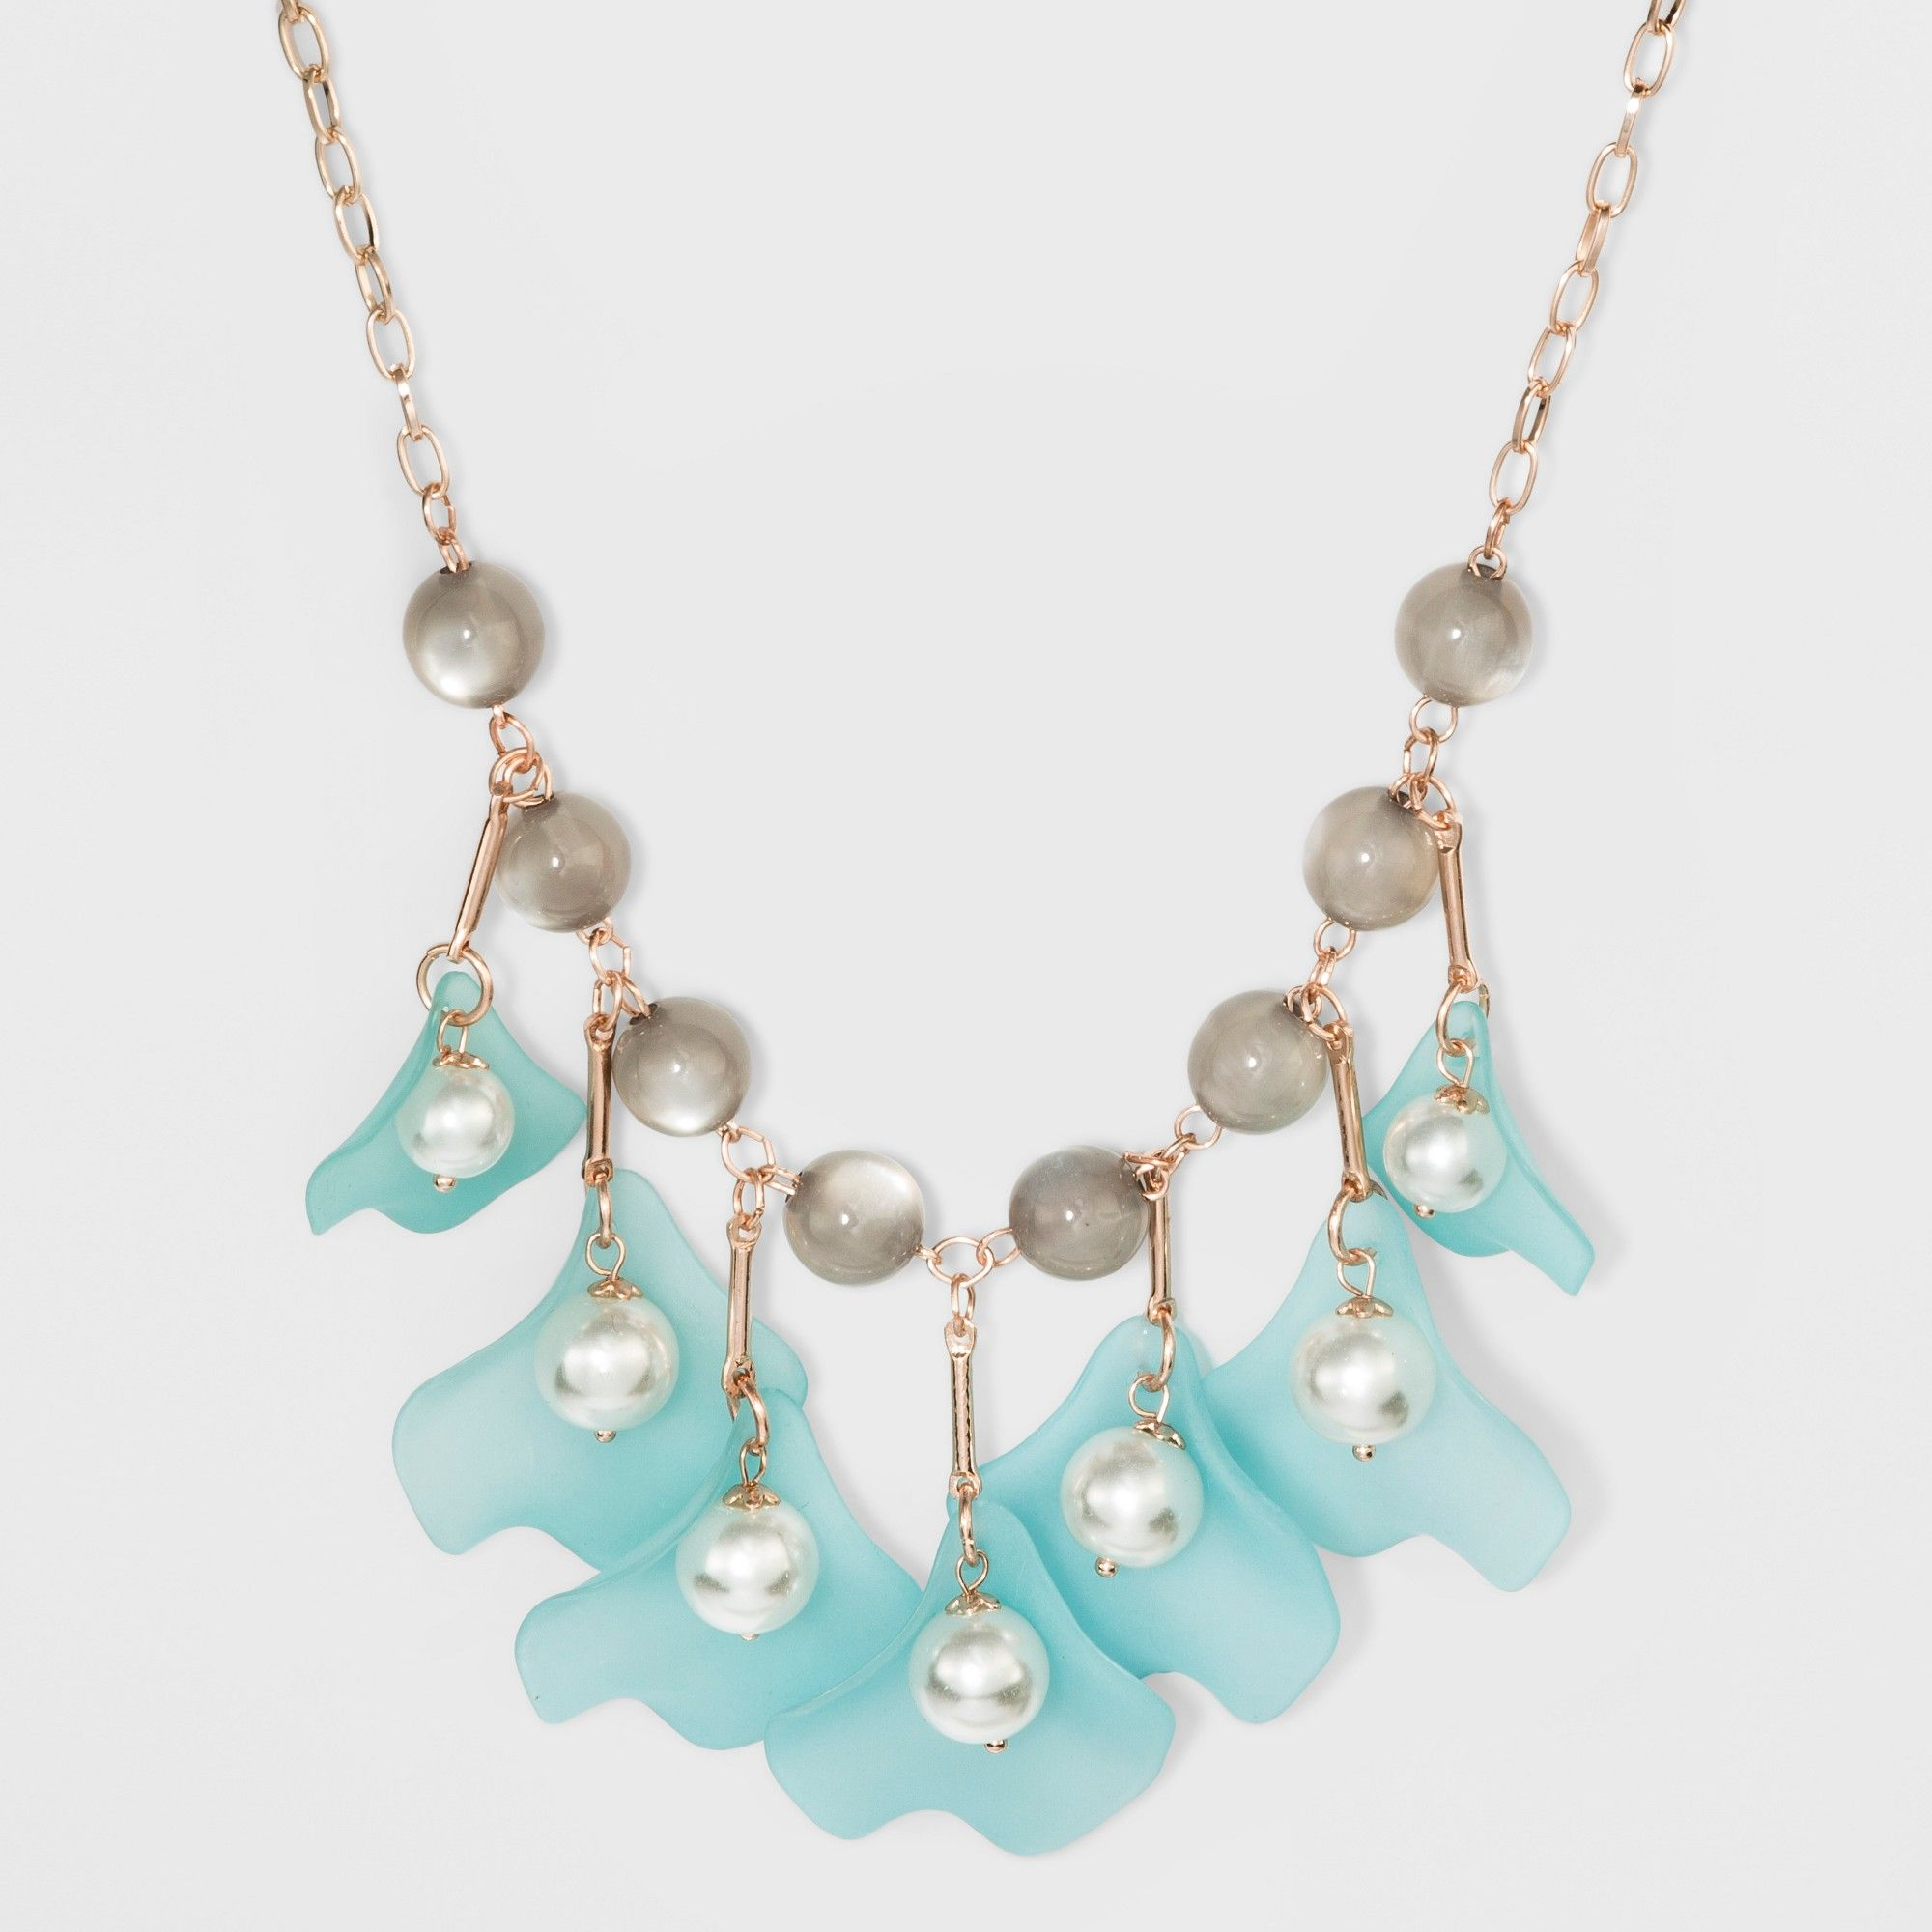 bca848922 Pearl, Acrylic, and Plastic Petals Short Necklace - A New Day, Rose Gold